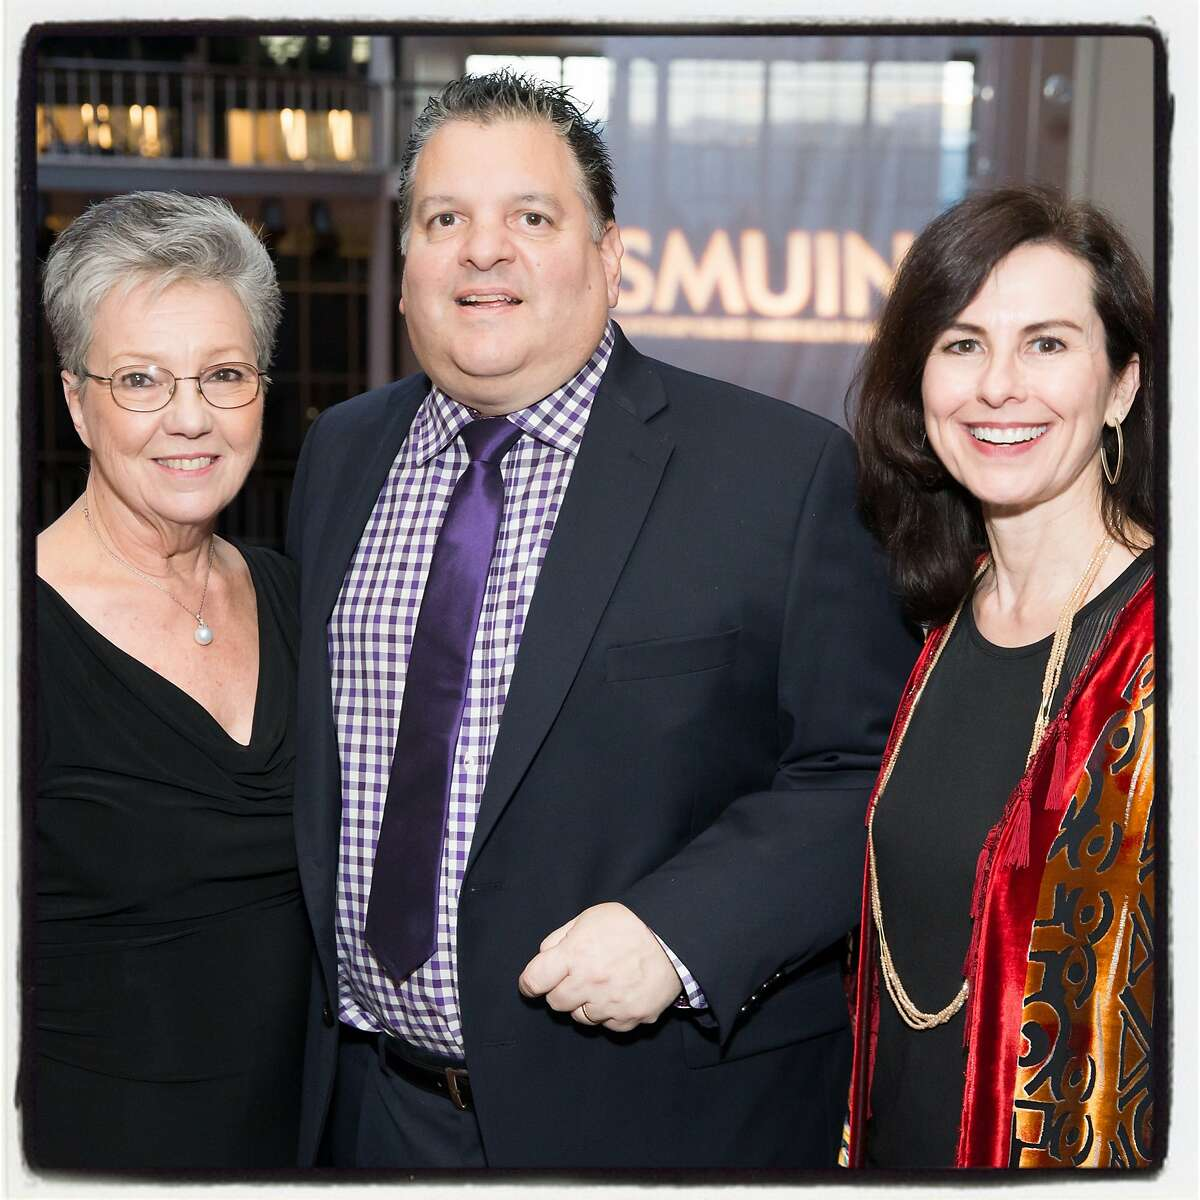 Smuin Ballet gala cochair Patti Hume (left) and John Konstin with Smuin Artistic Director Celia Fushille. March 4, 2018.